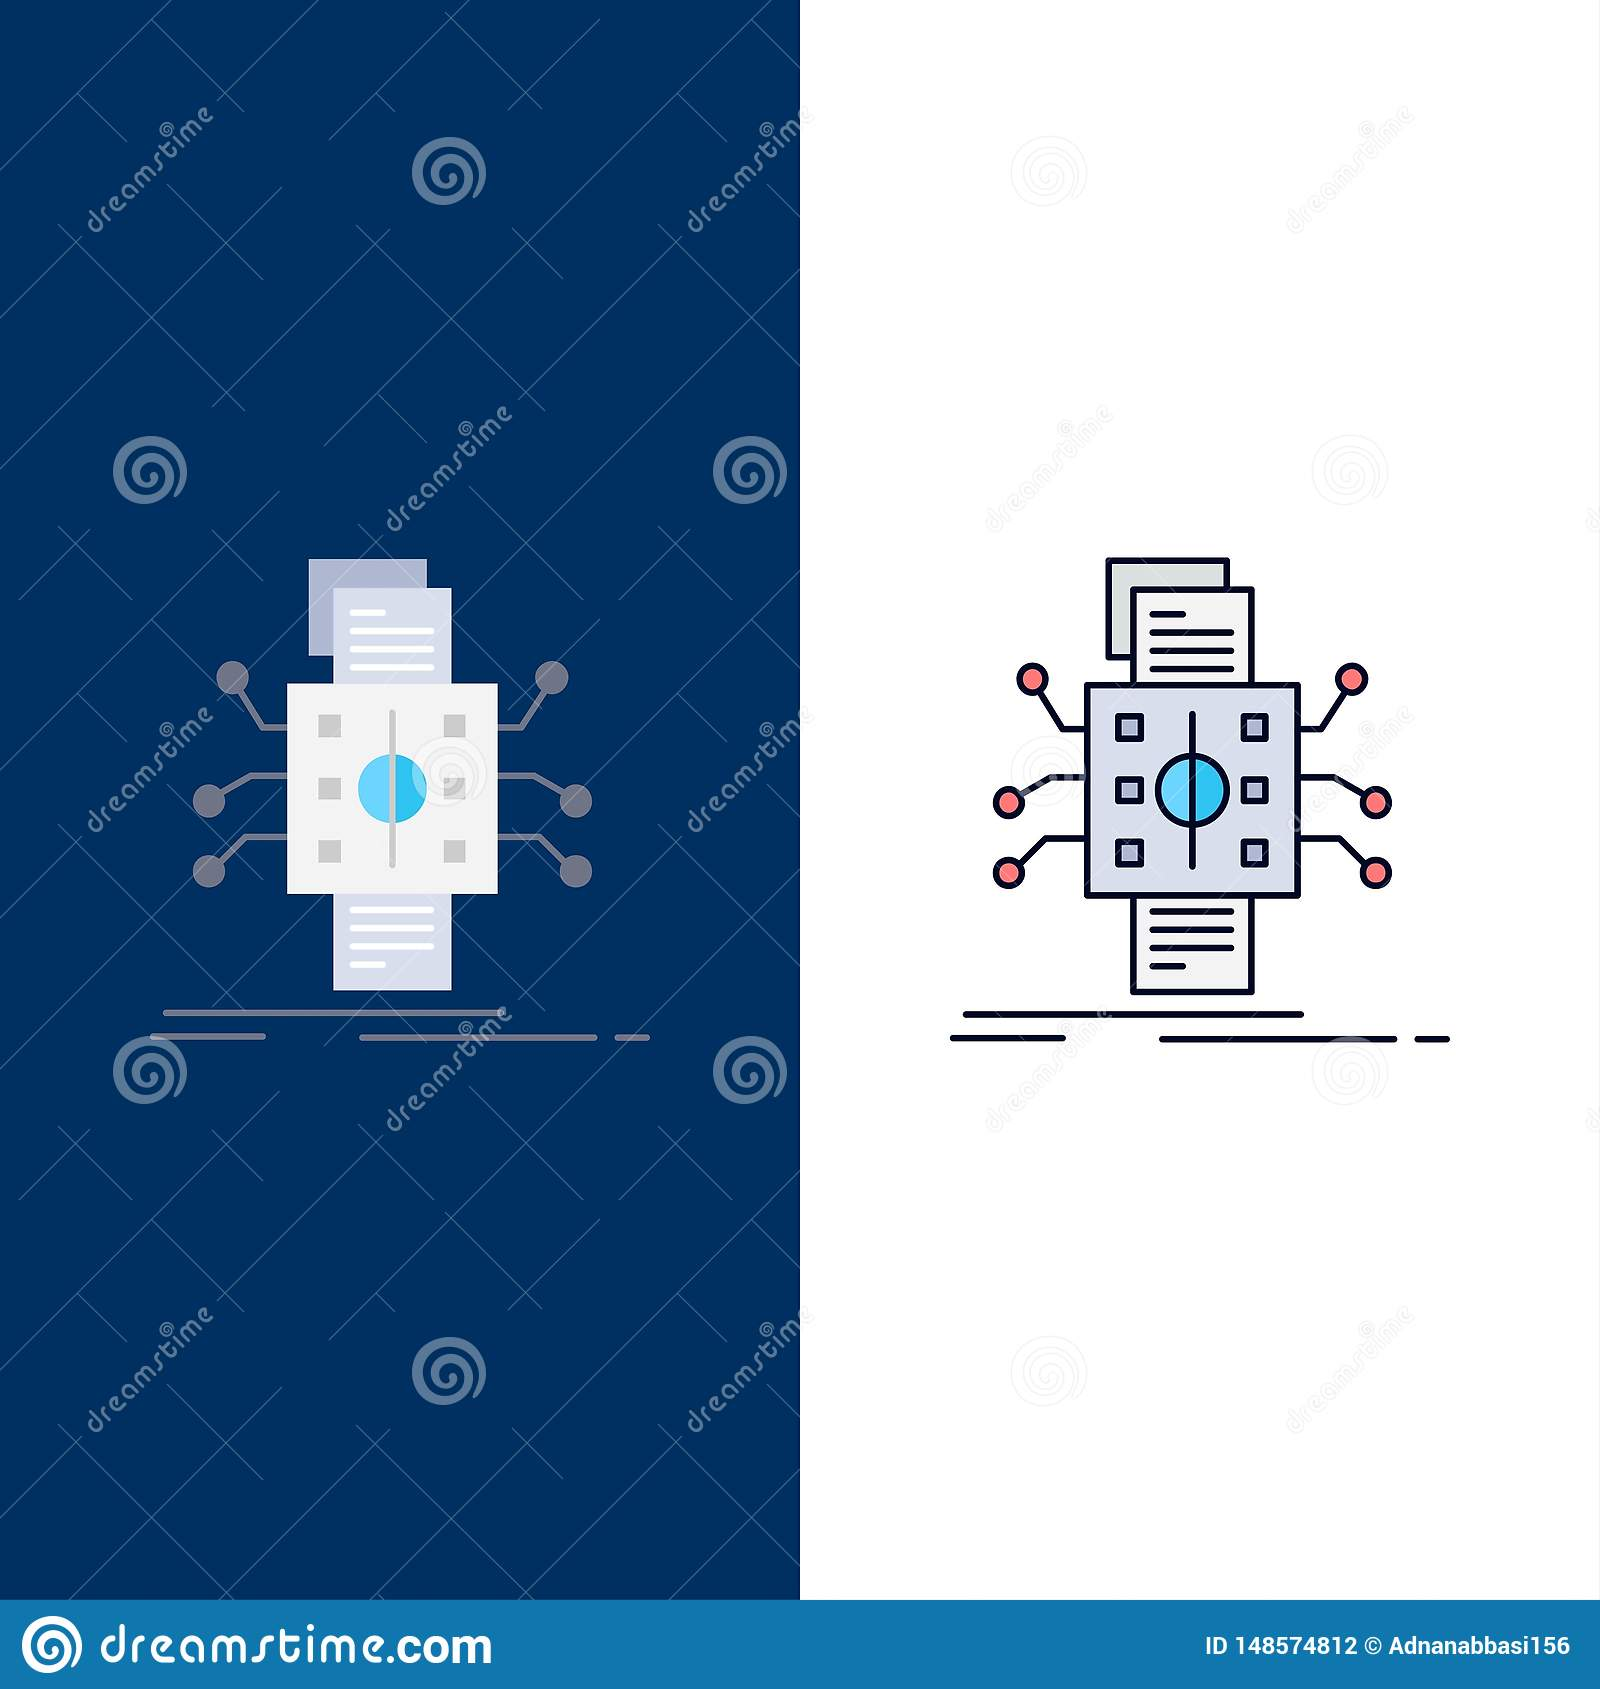 Analysis, data, datum, processing, reporting Flat Color Icon Vector